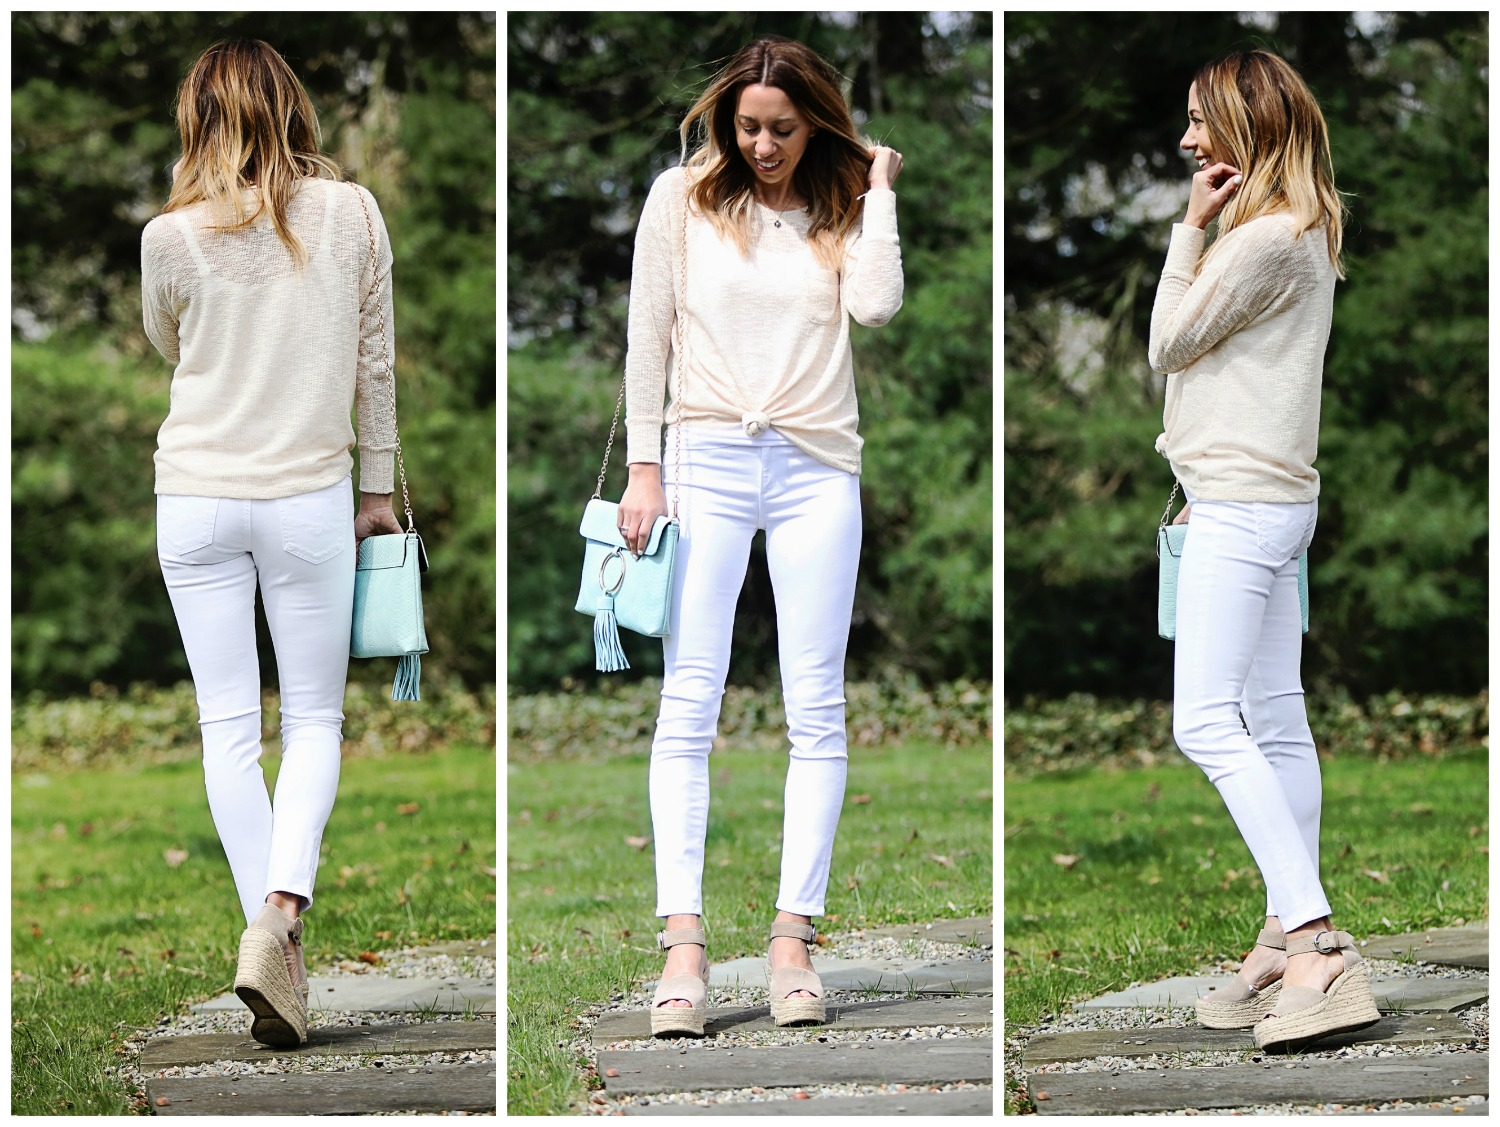 The Motherchic wearing AG sateen jeans